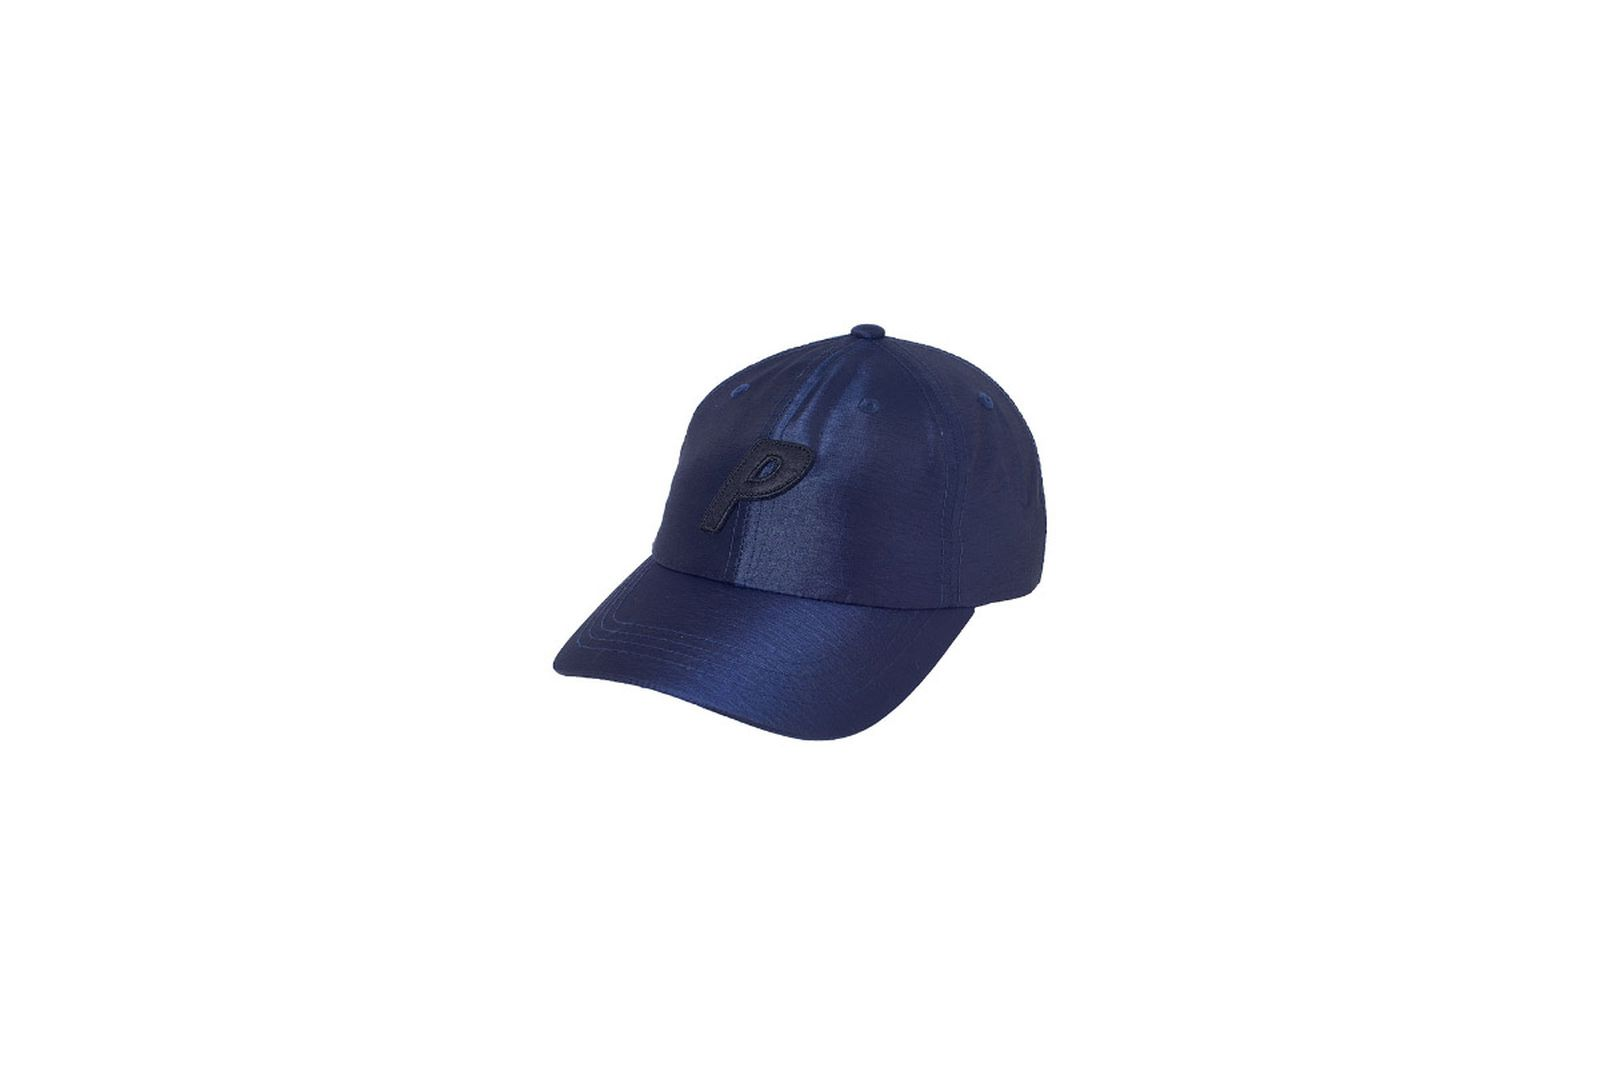 Palace 2019 Autumn cap p cruise shell 6 panel navy1423